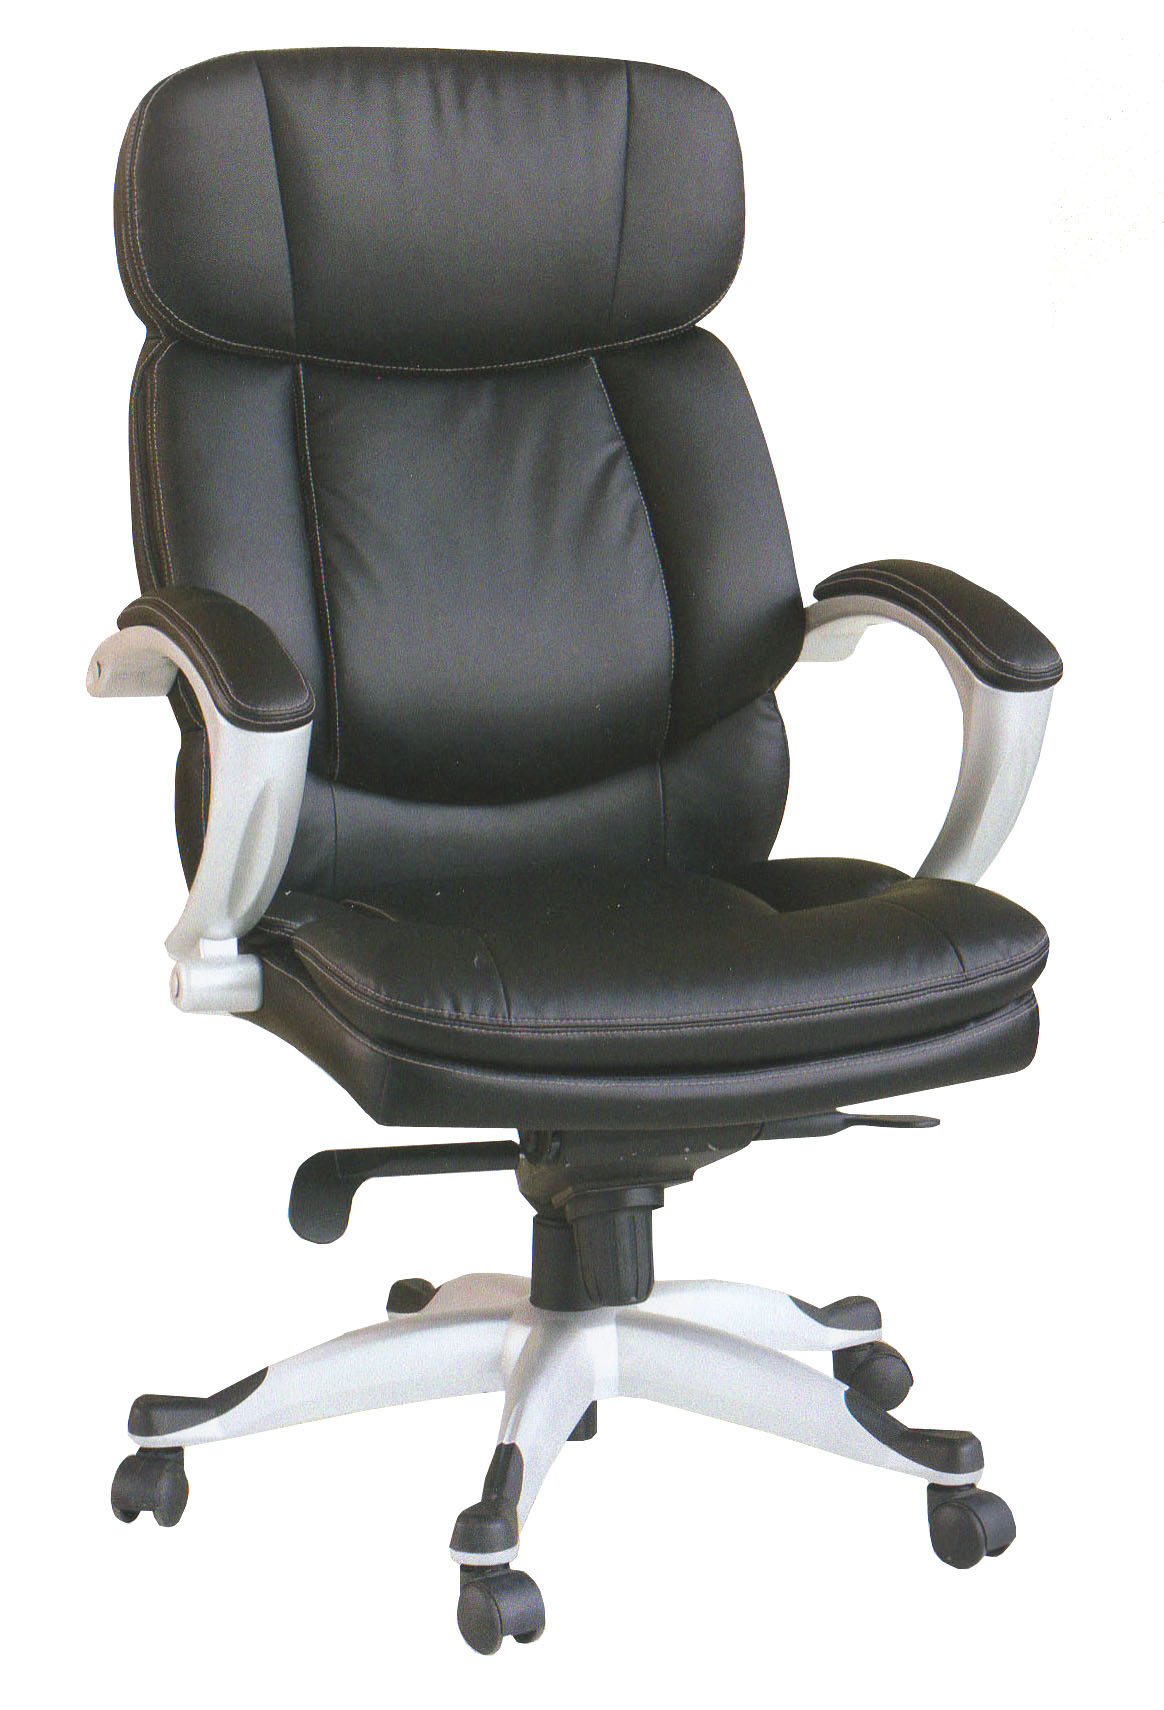 Most comfortable computer chair - Hcoc9768 Executive Comfort Computer Chair Black Leather Retail 900 Discounted 775 Free Shipping